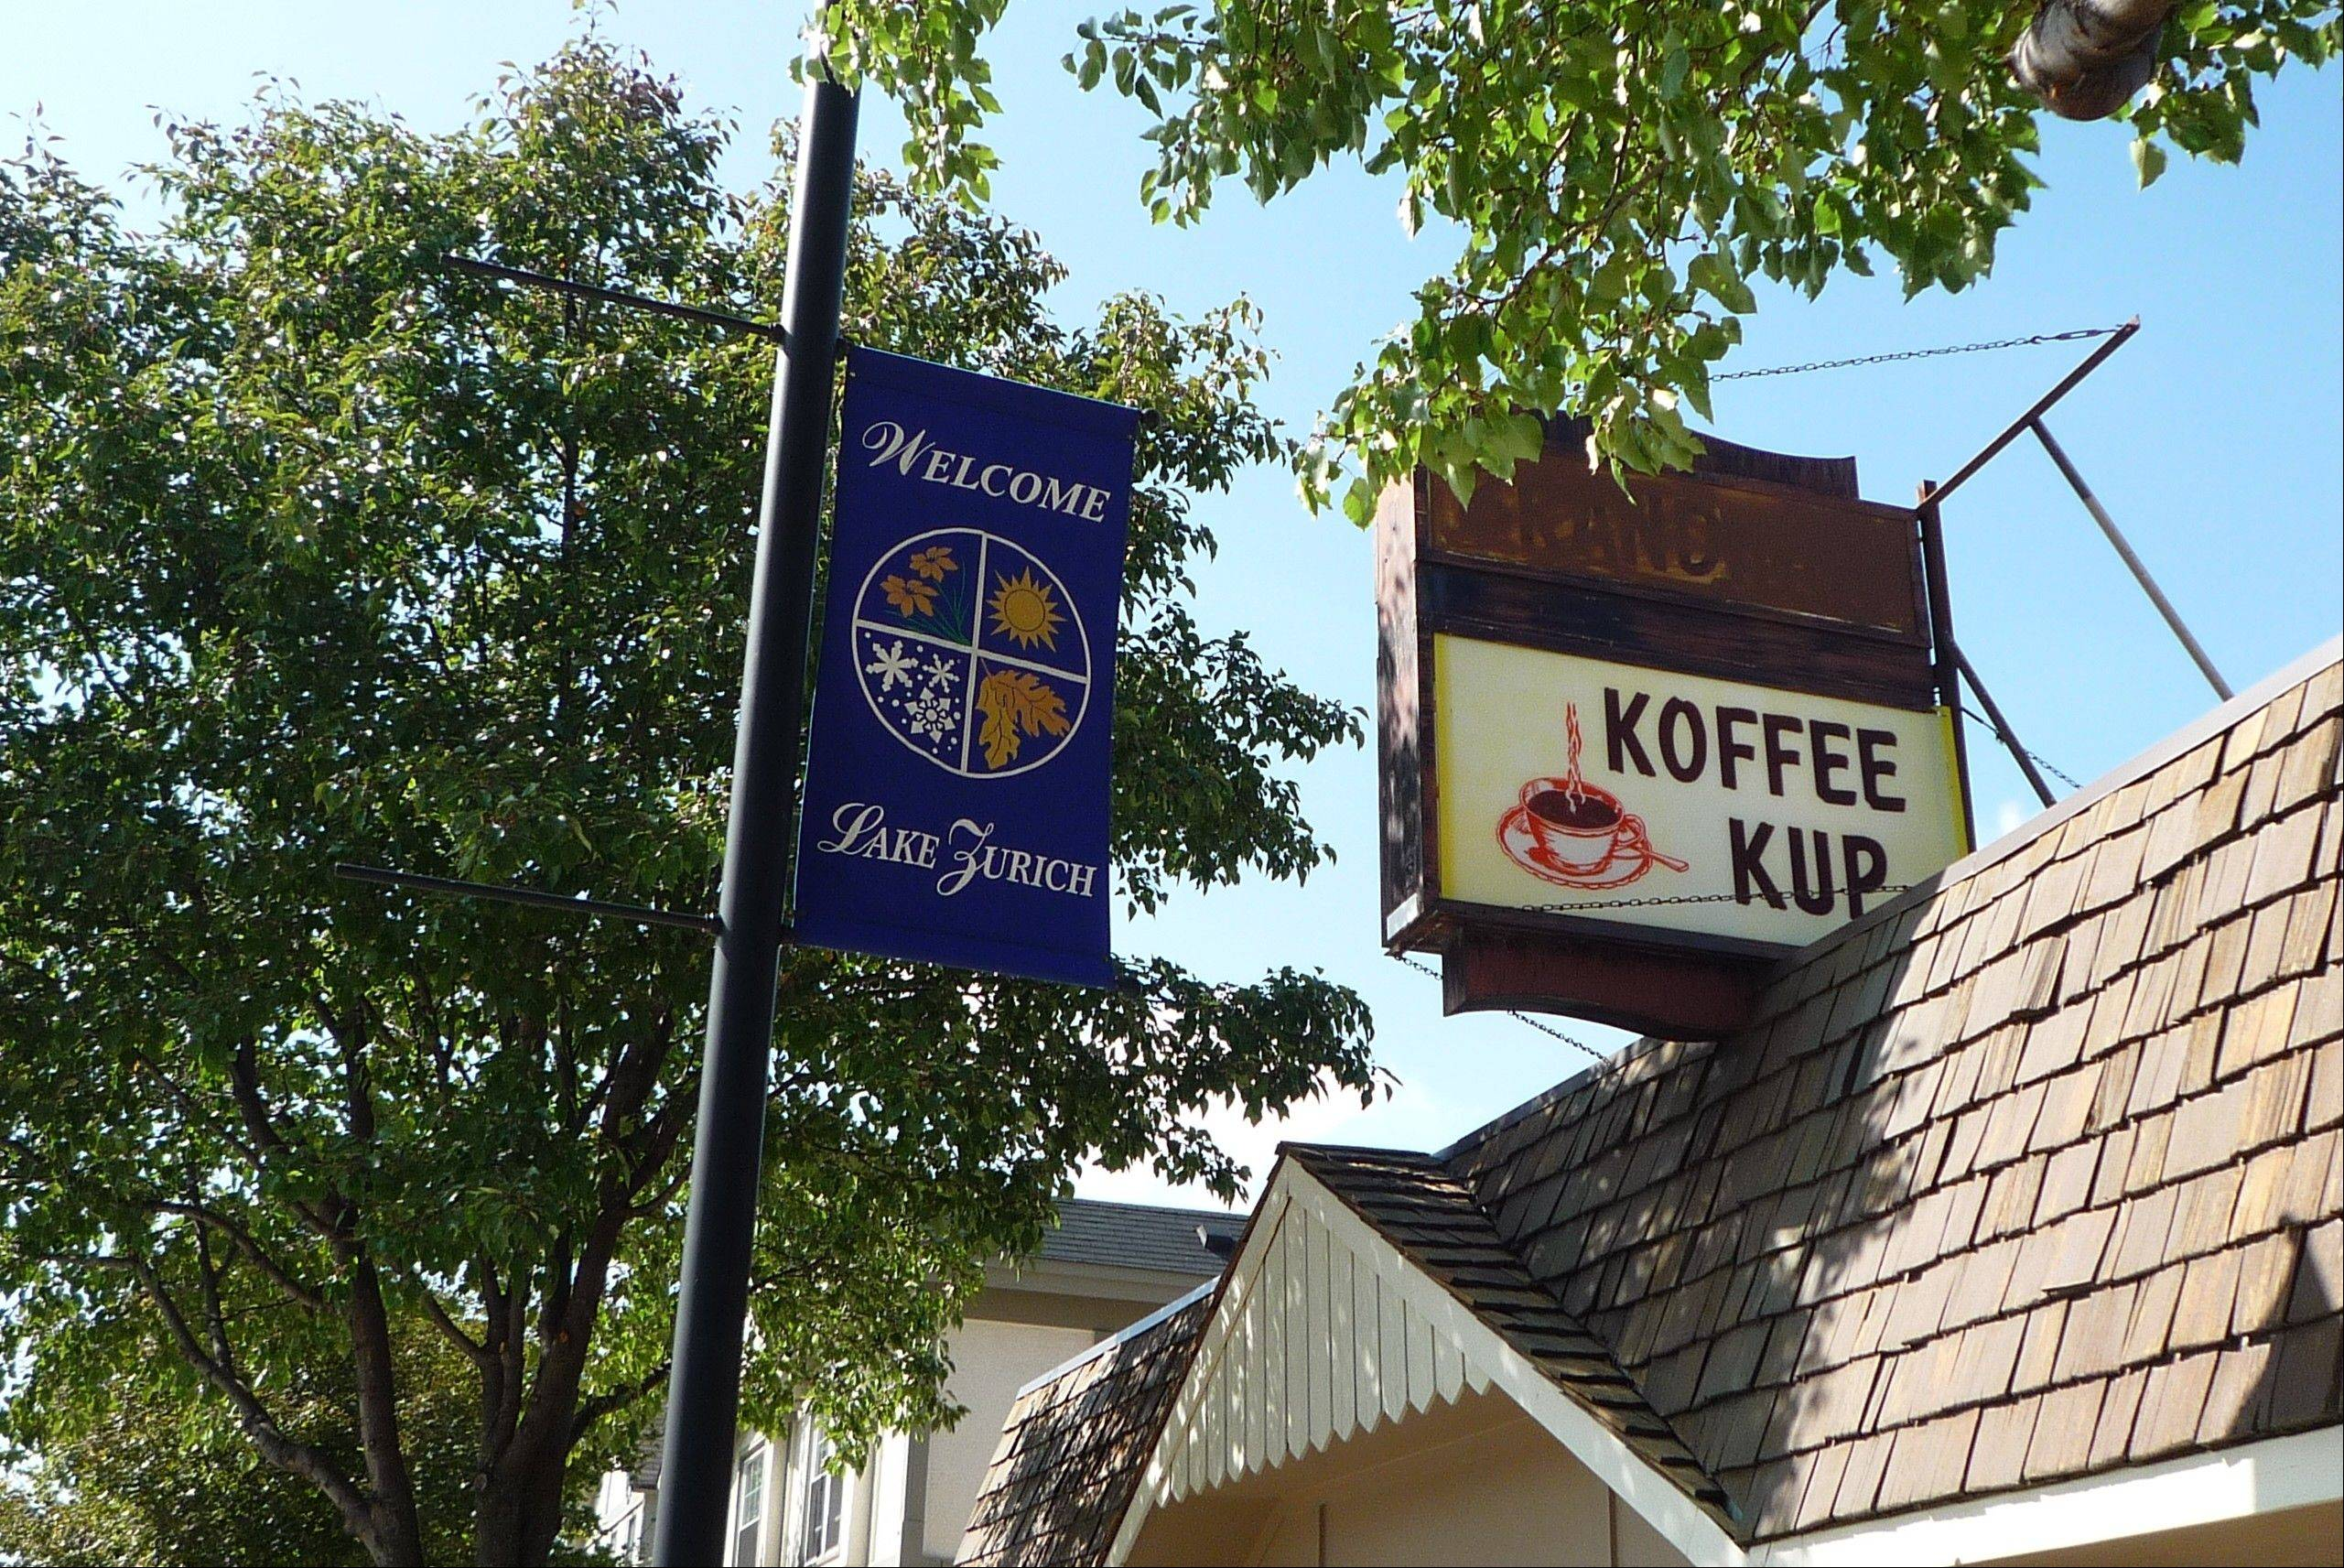 """Gravity"" star Sandra Bullock has never eaten here, and the menu does not have a ""Dr. Ryan Stone"" sandwich named after her character. Customers at the Koffee Kup diner in downtown Lake Zurich aren't sure how their suburb earned a mention from Bullock's character in the movie opening tonight."